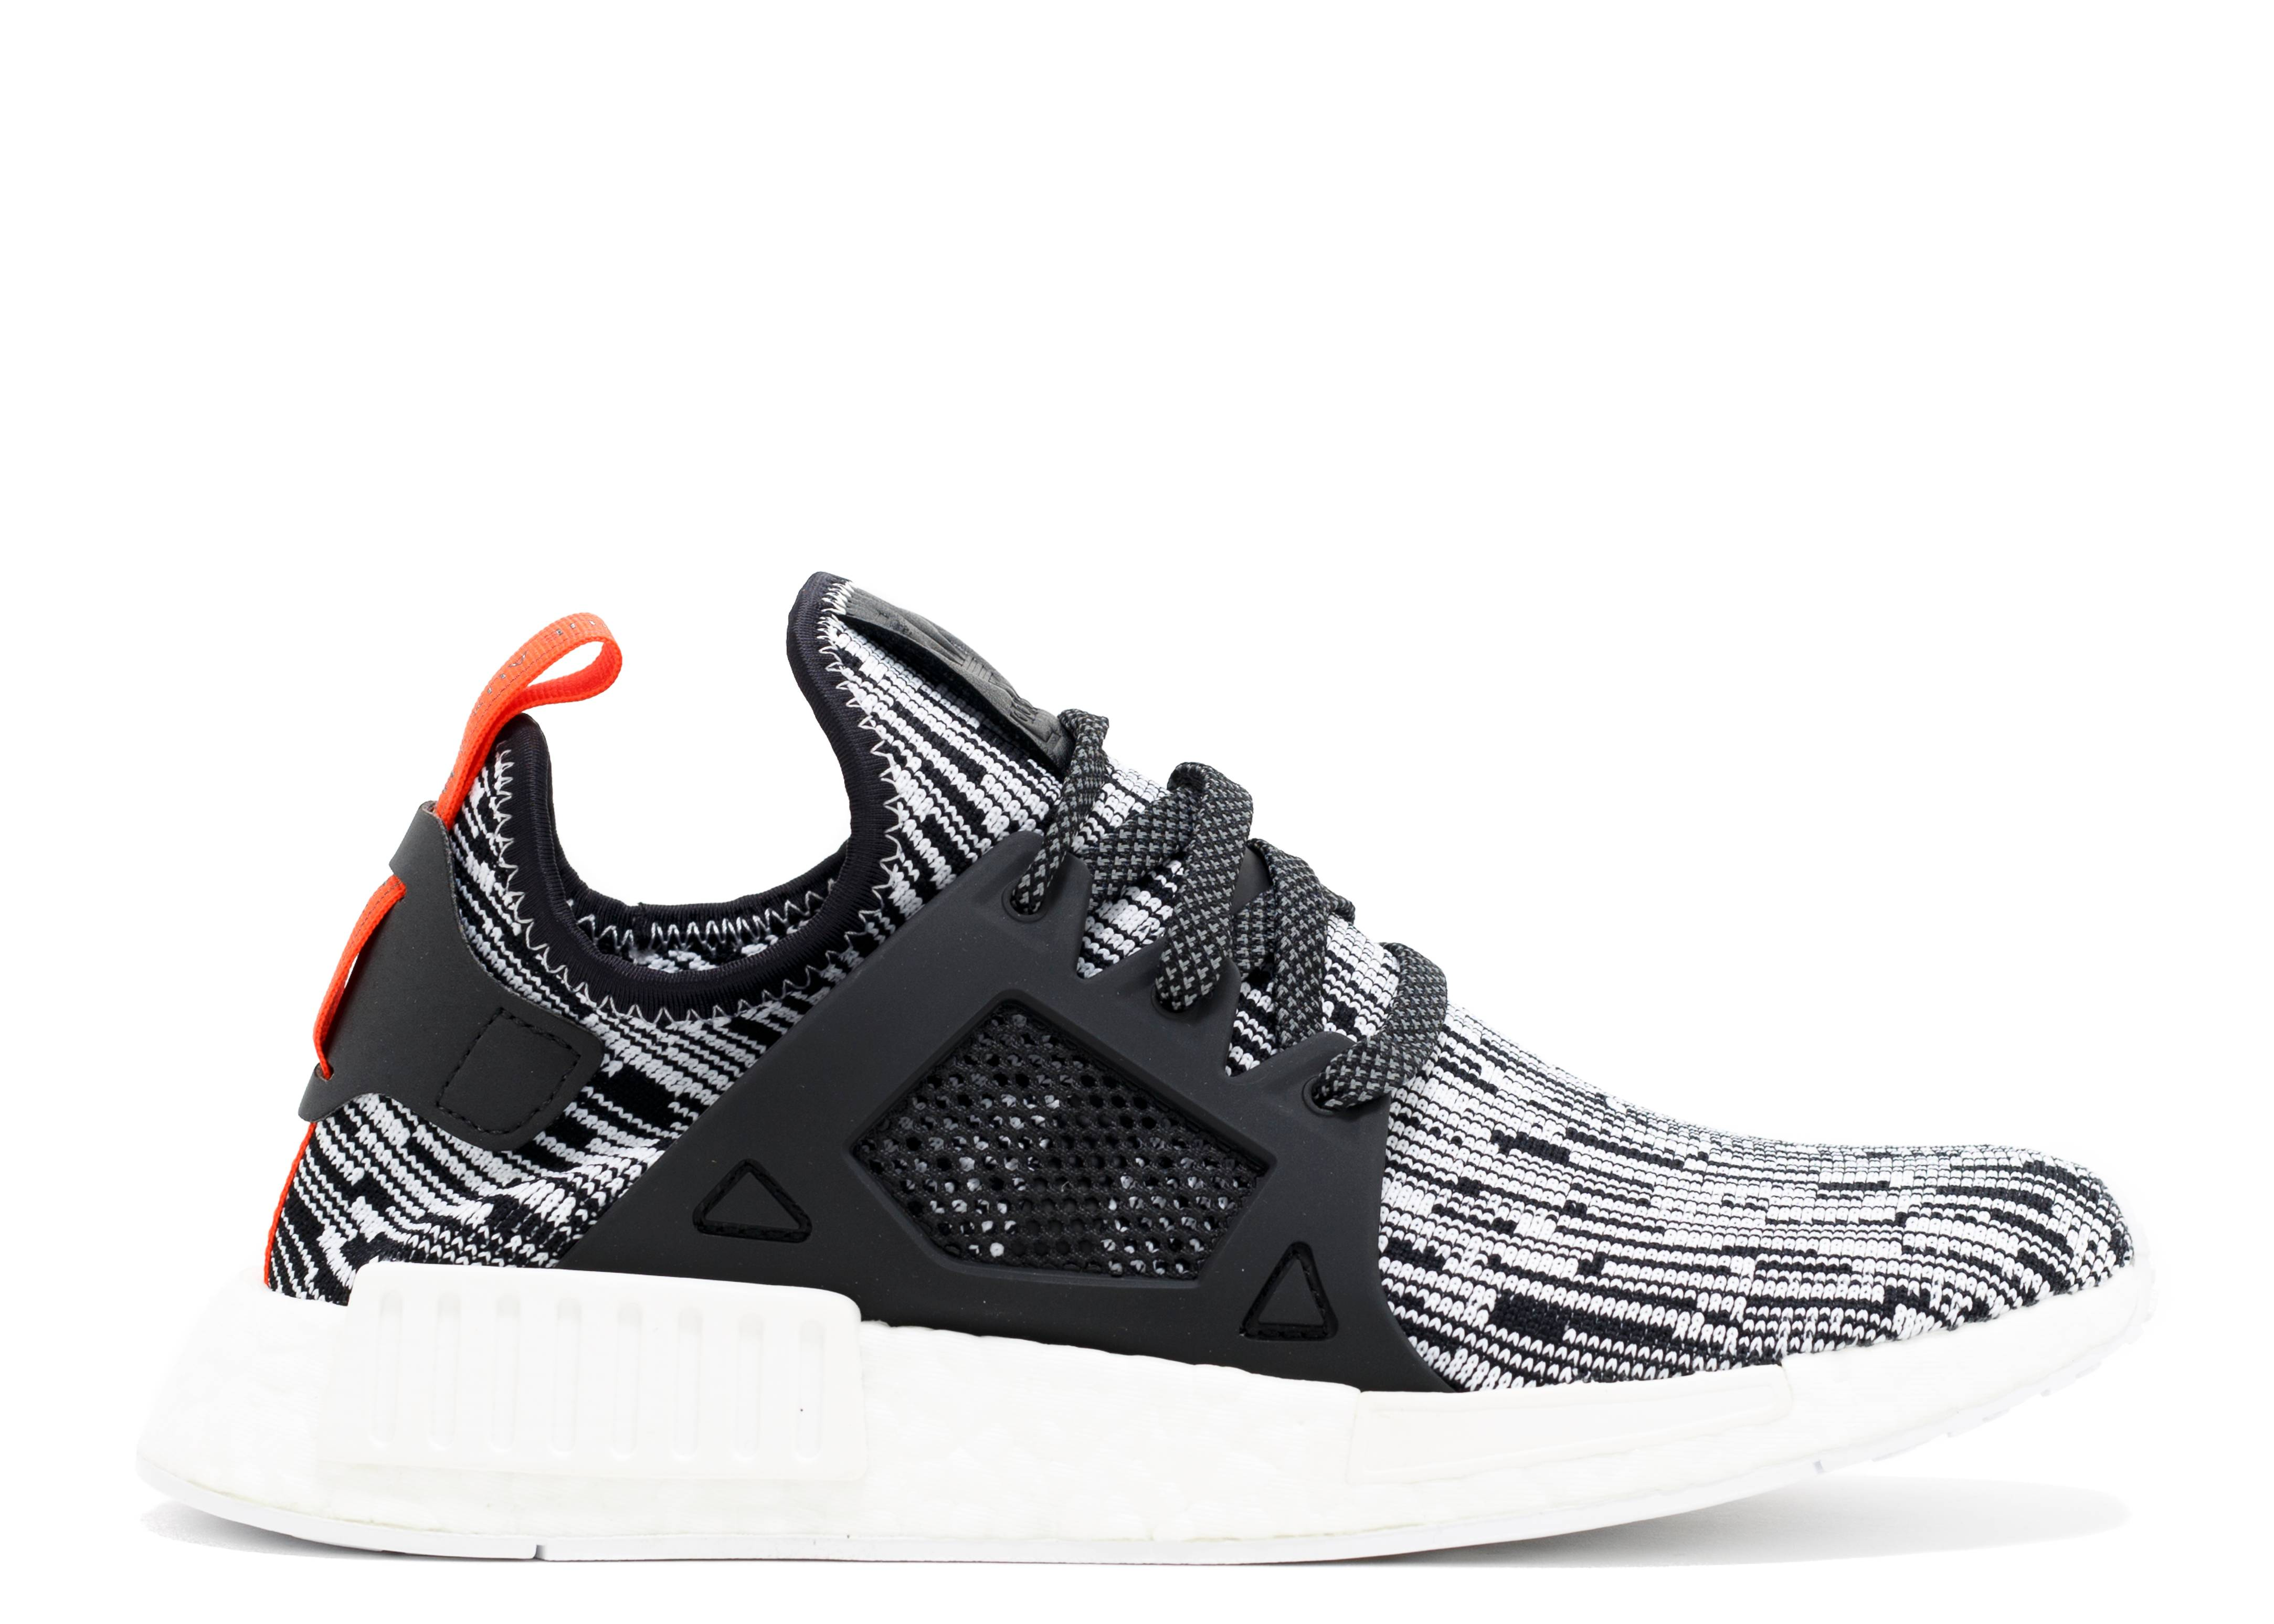 【LULU國際代購】adidas Originals NMD XR1 PK 復古白BB3684(有